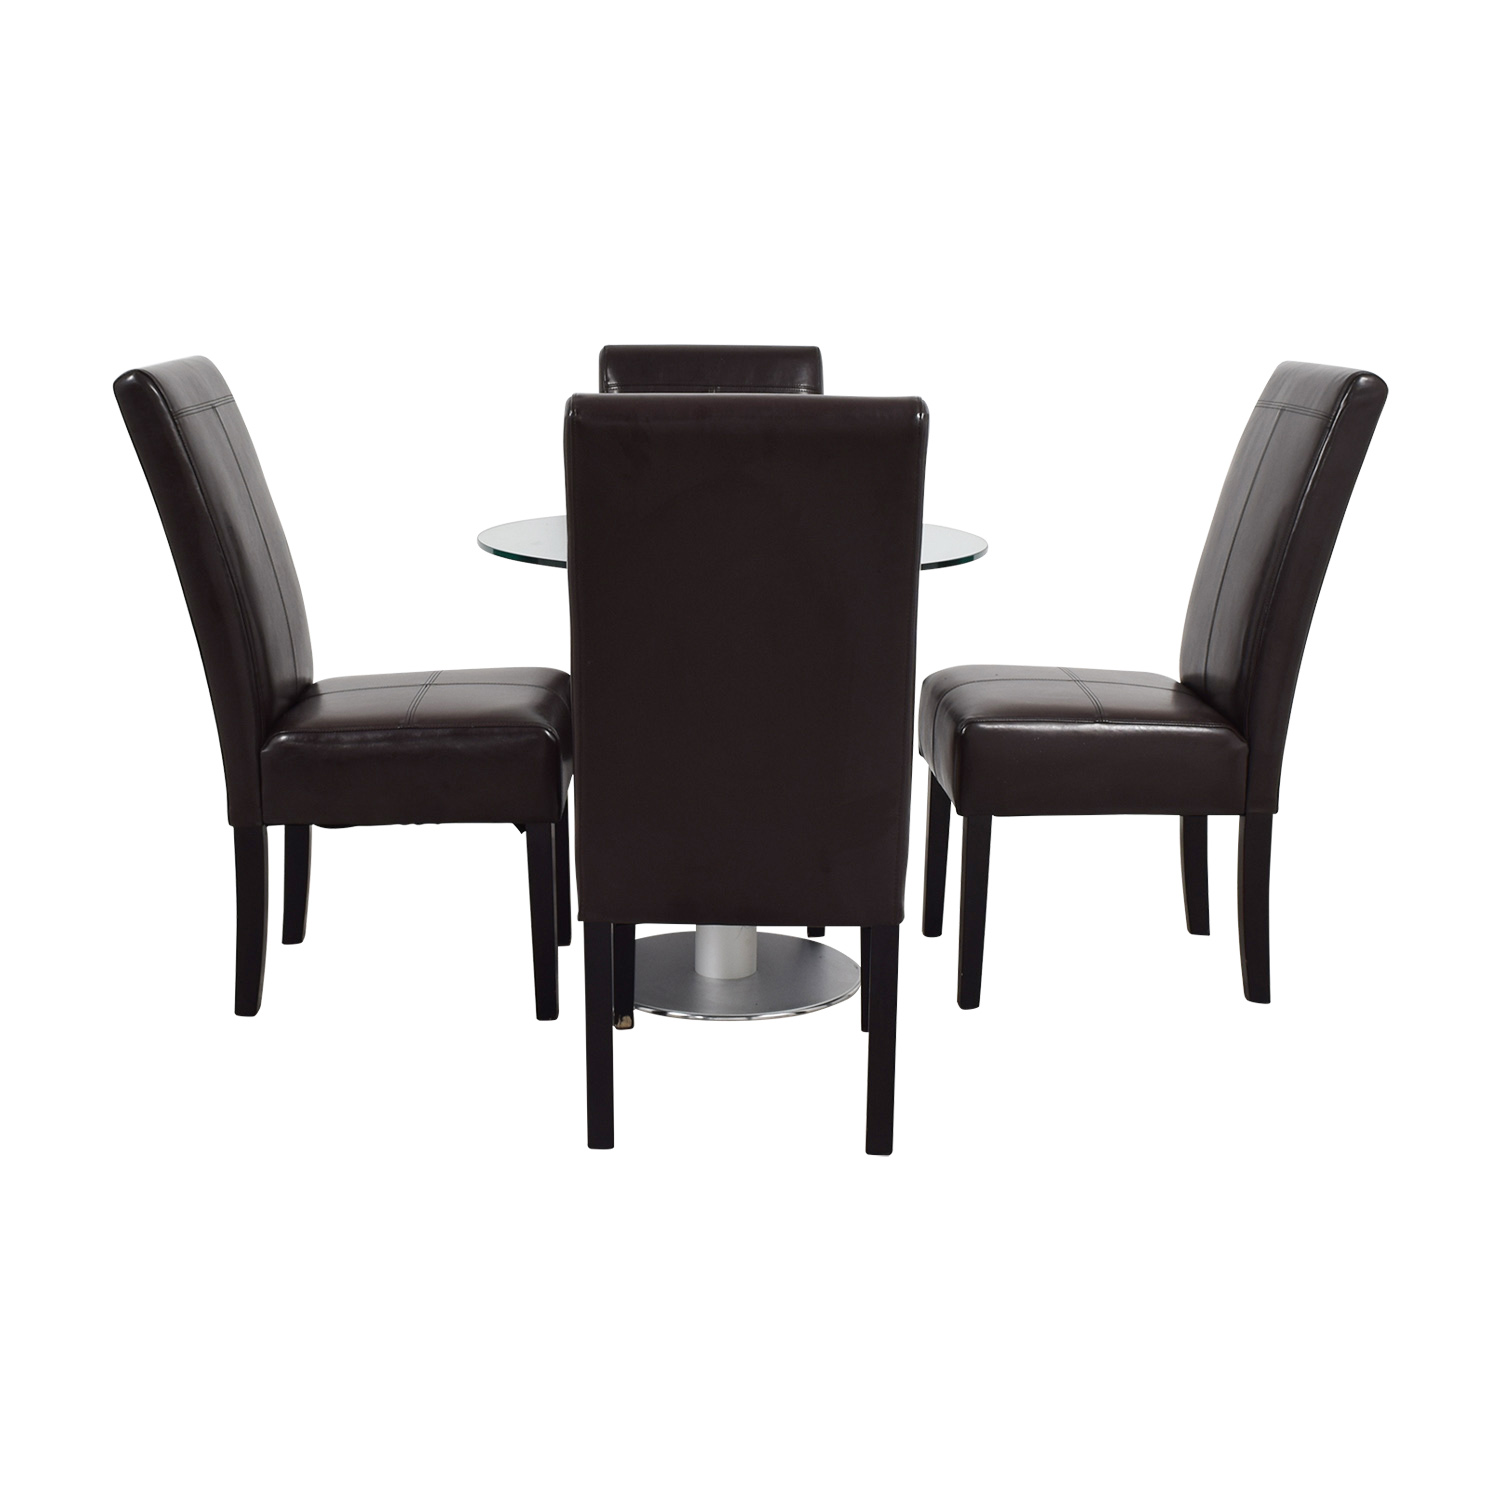 Round Glass and Metal Dining Set